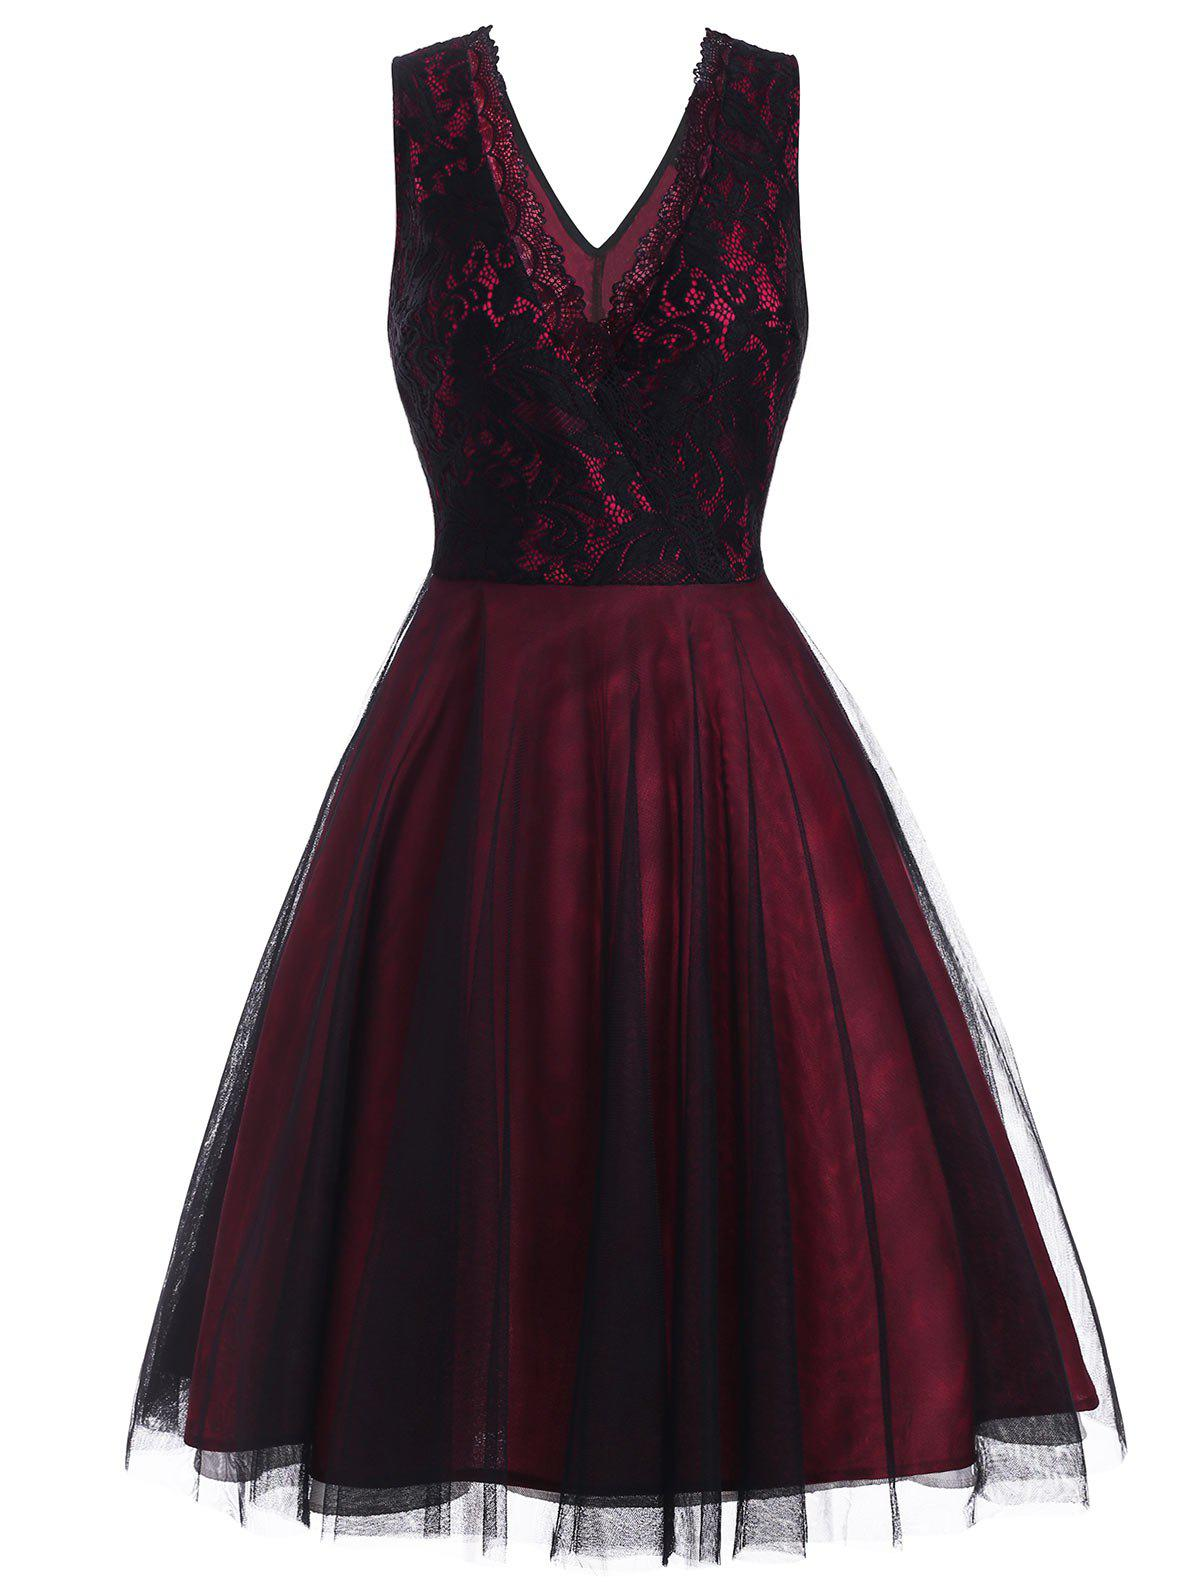 Lace Overlay Sleeveless Surplice Party Dress - RED WINE XL